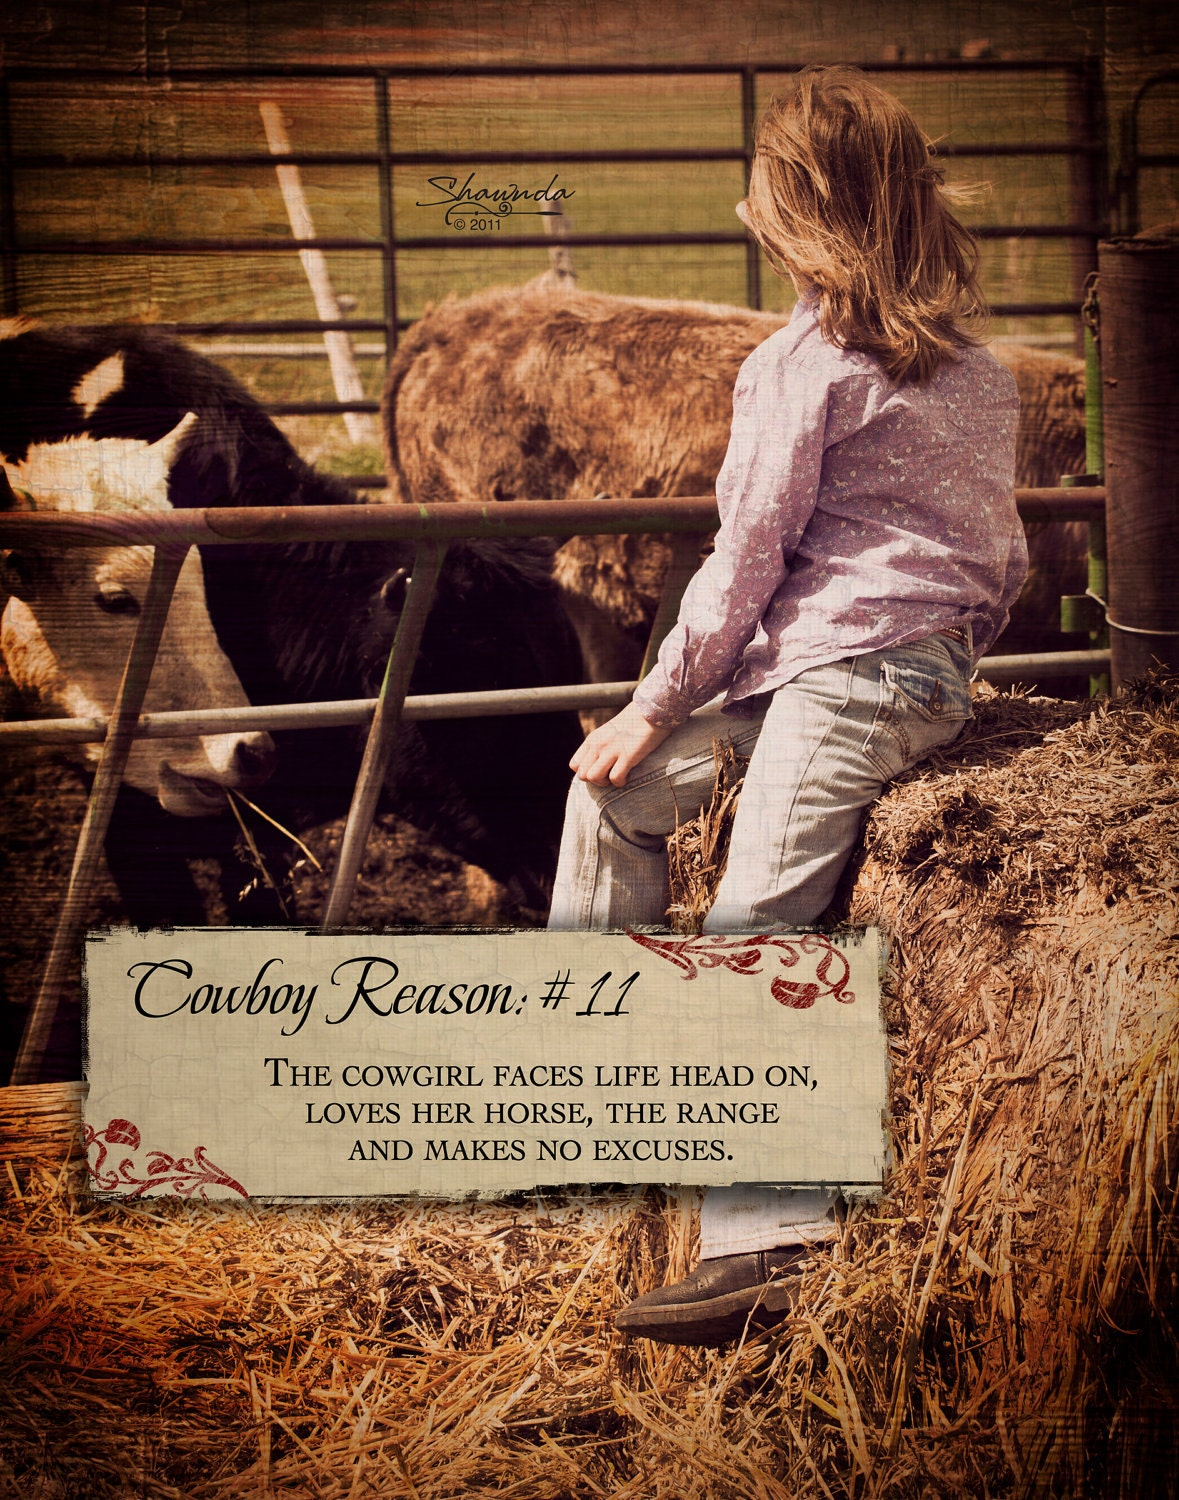 Cowgirl pictures with quotes